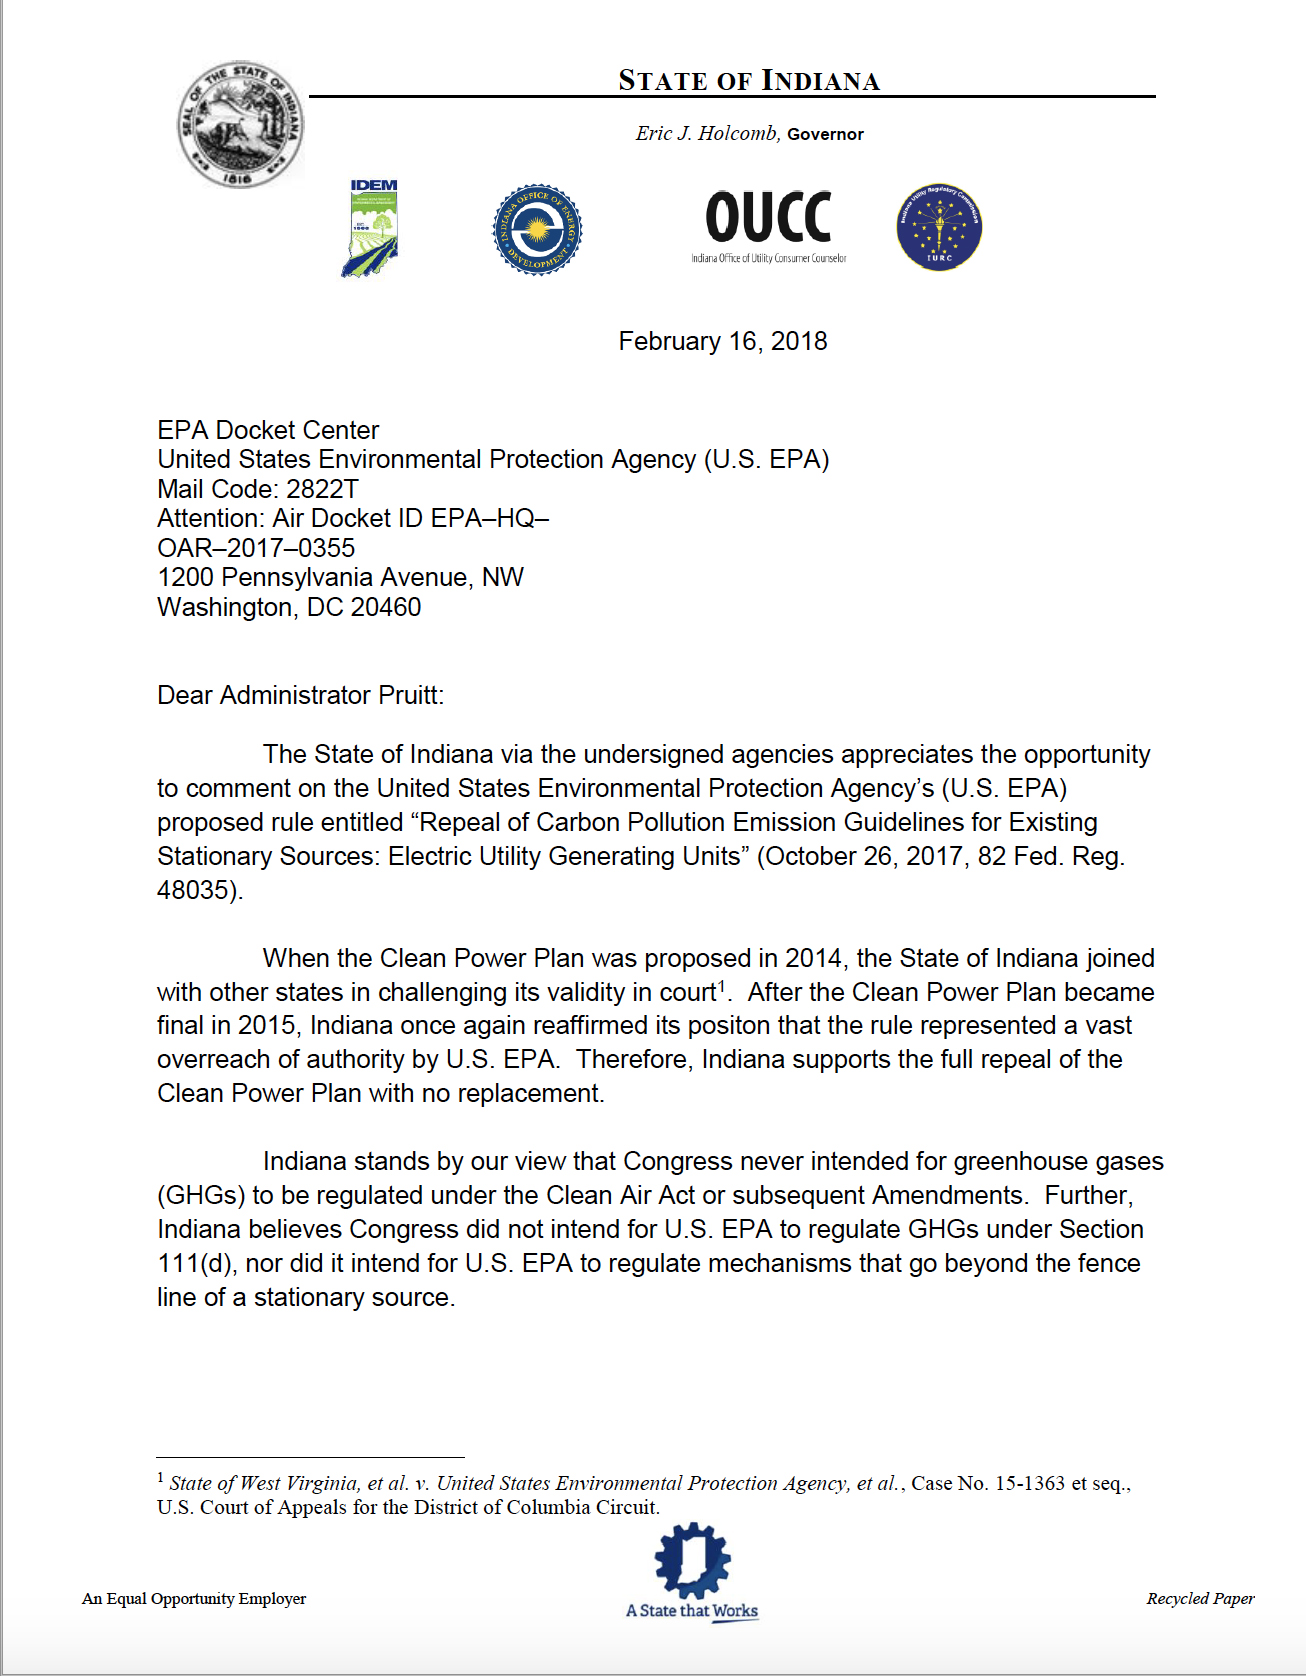 This is a copy of the letter sent by the state of Indiana to the EPA.